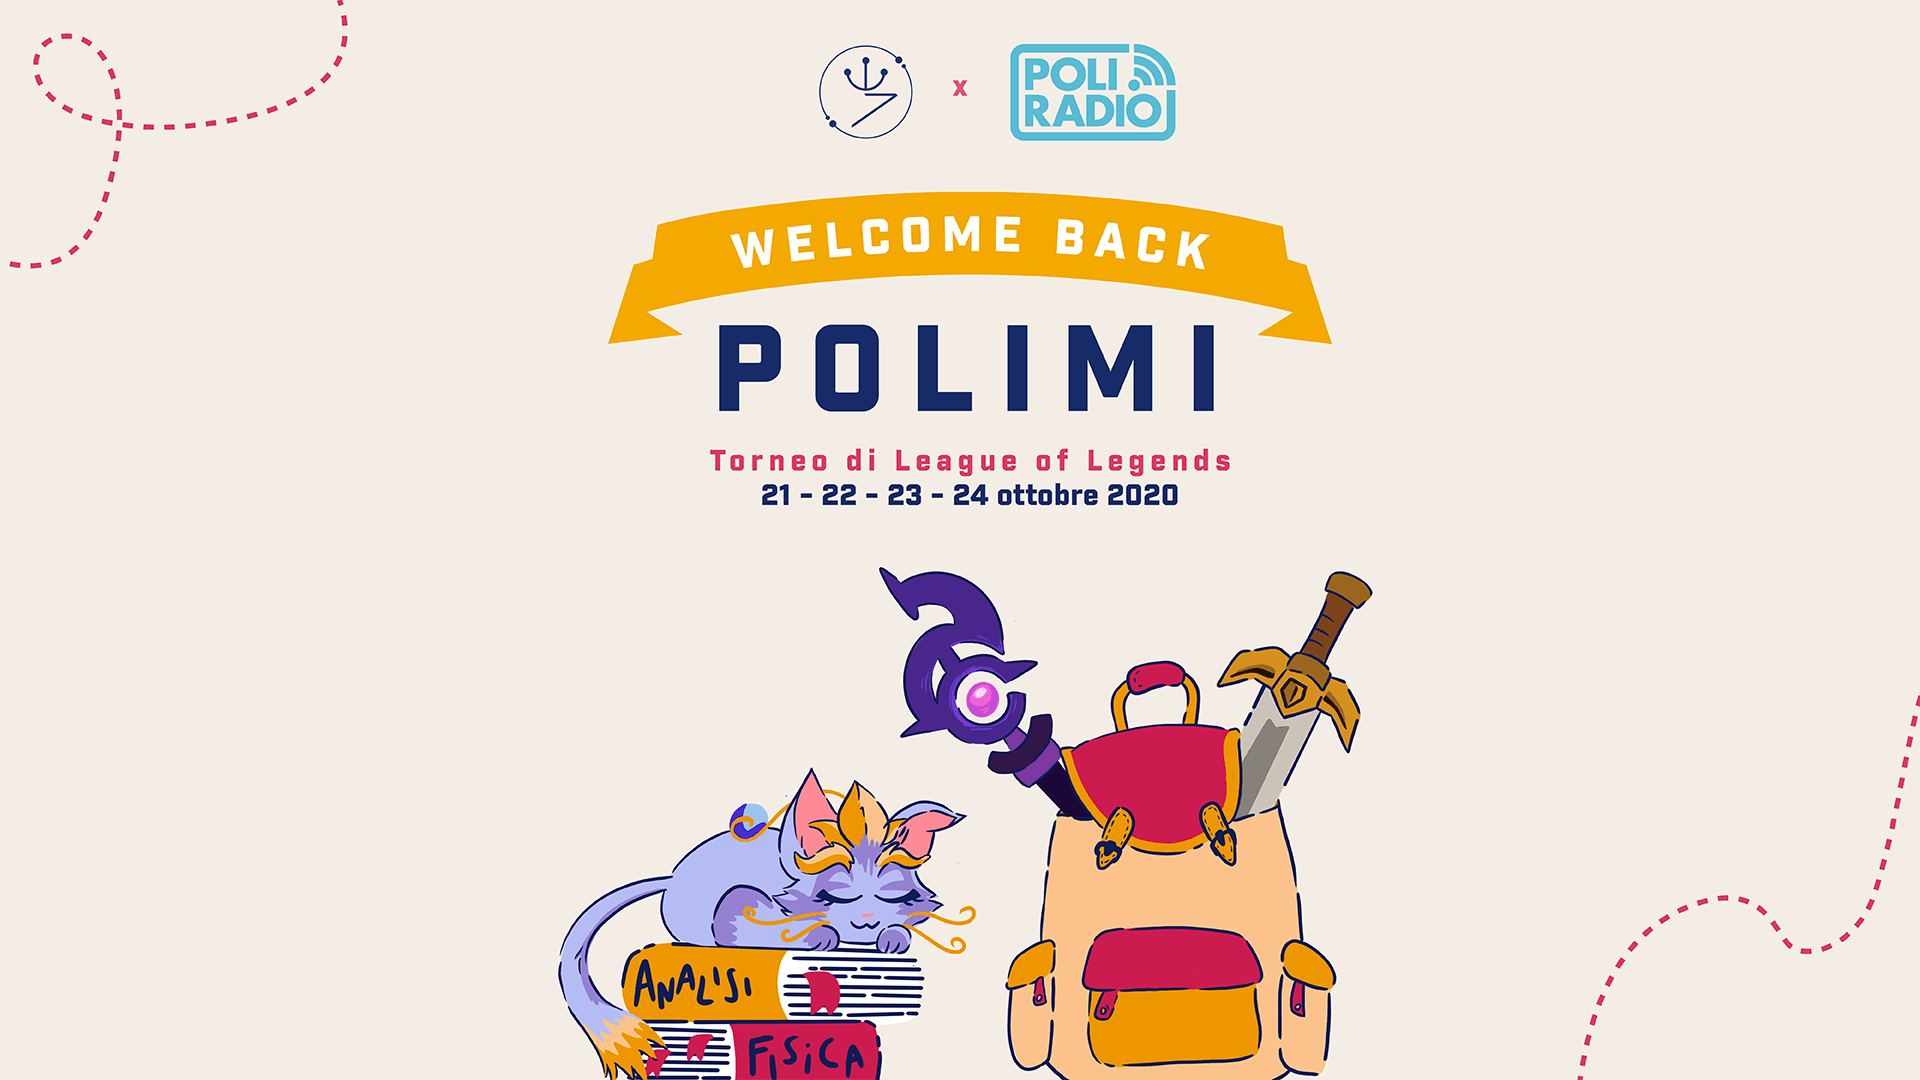 Welcome Back Polimi